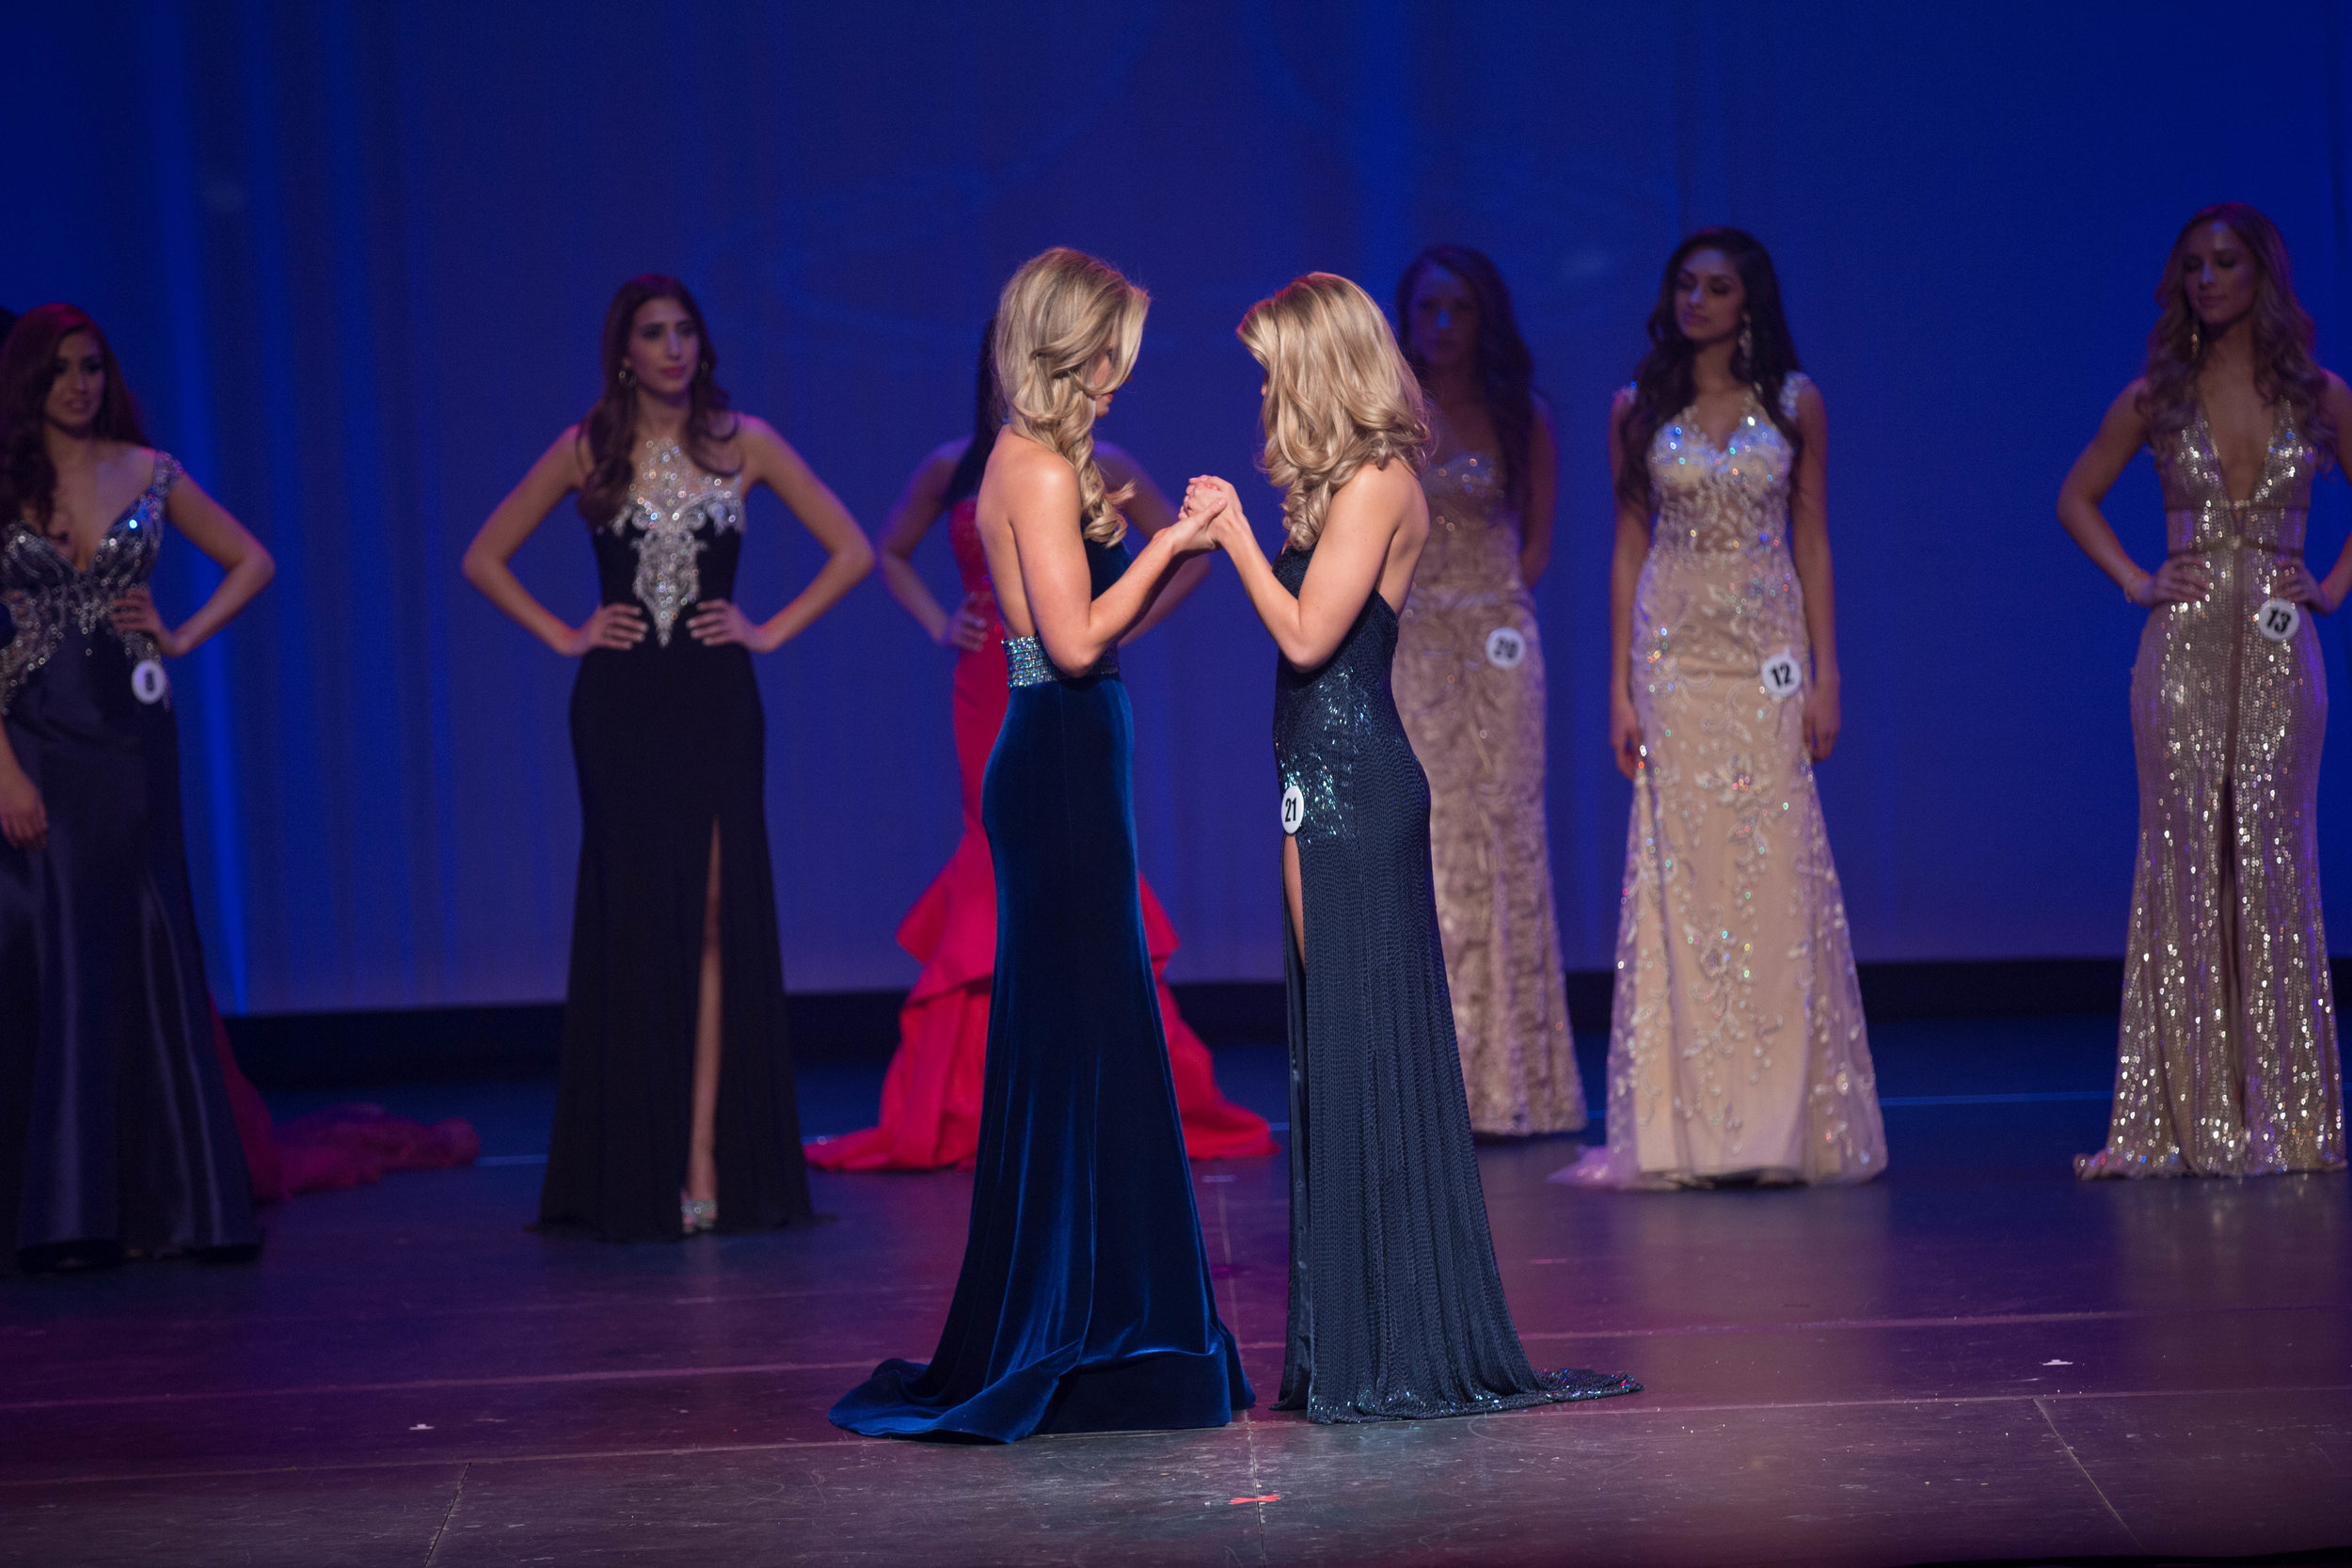 The Next Miss Connecticut USA is..... - Not me